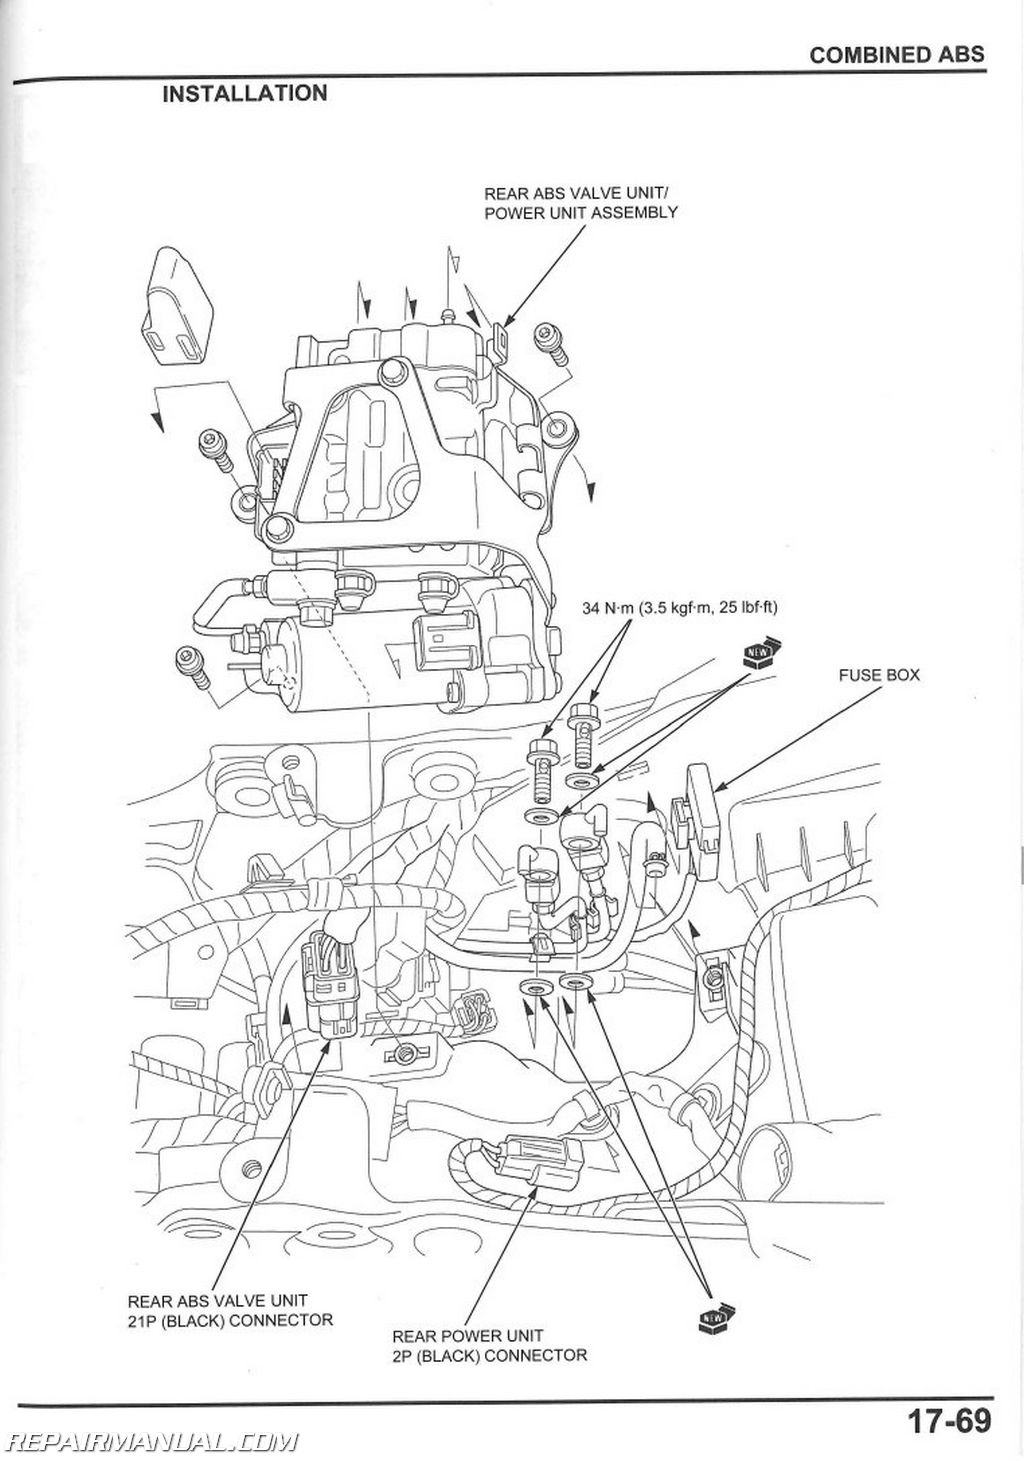 2004 Honda Wiring Diagram Fuel : Fuel Filter 2006 Honda